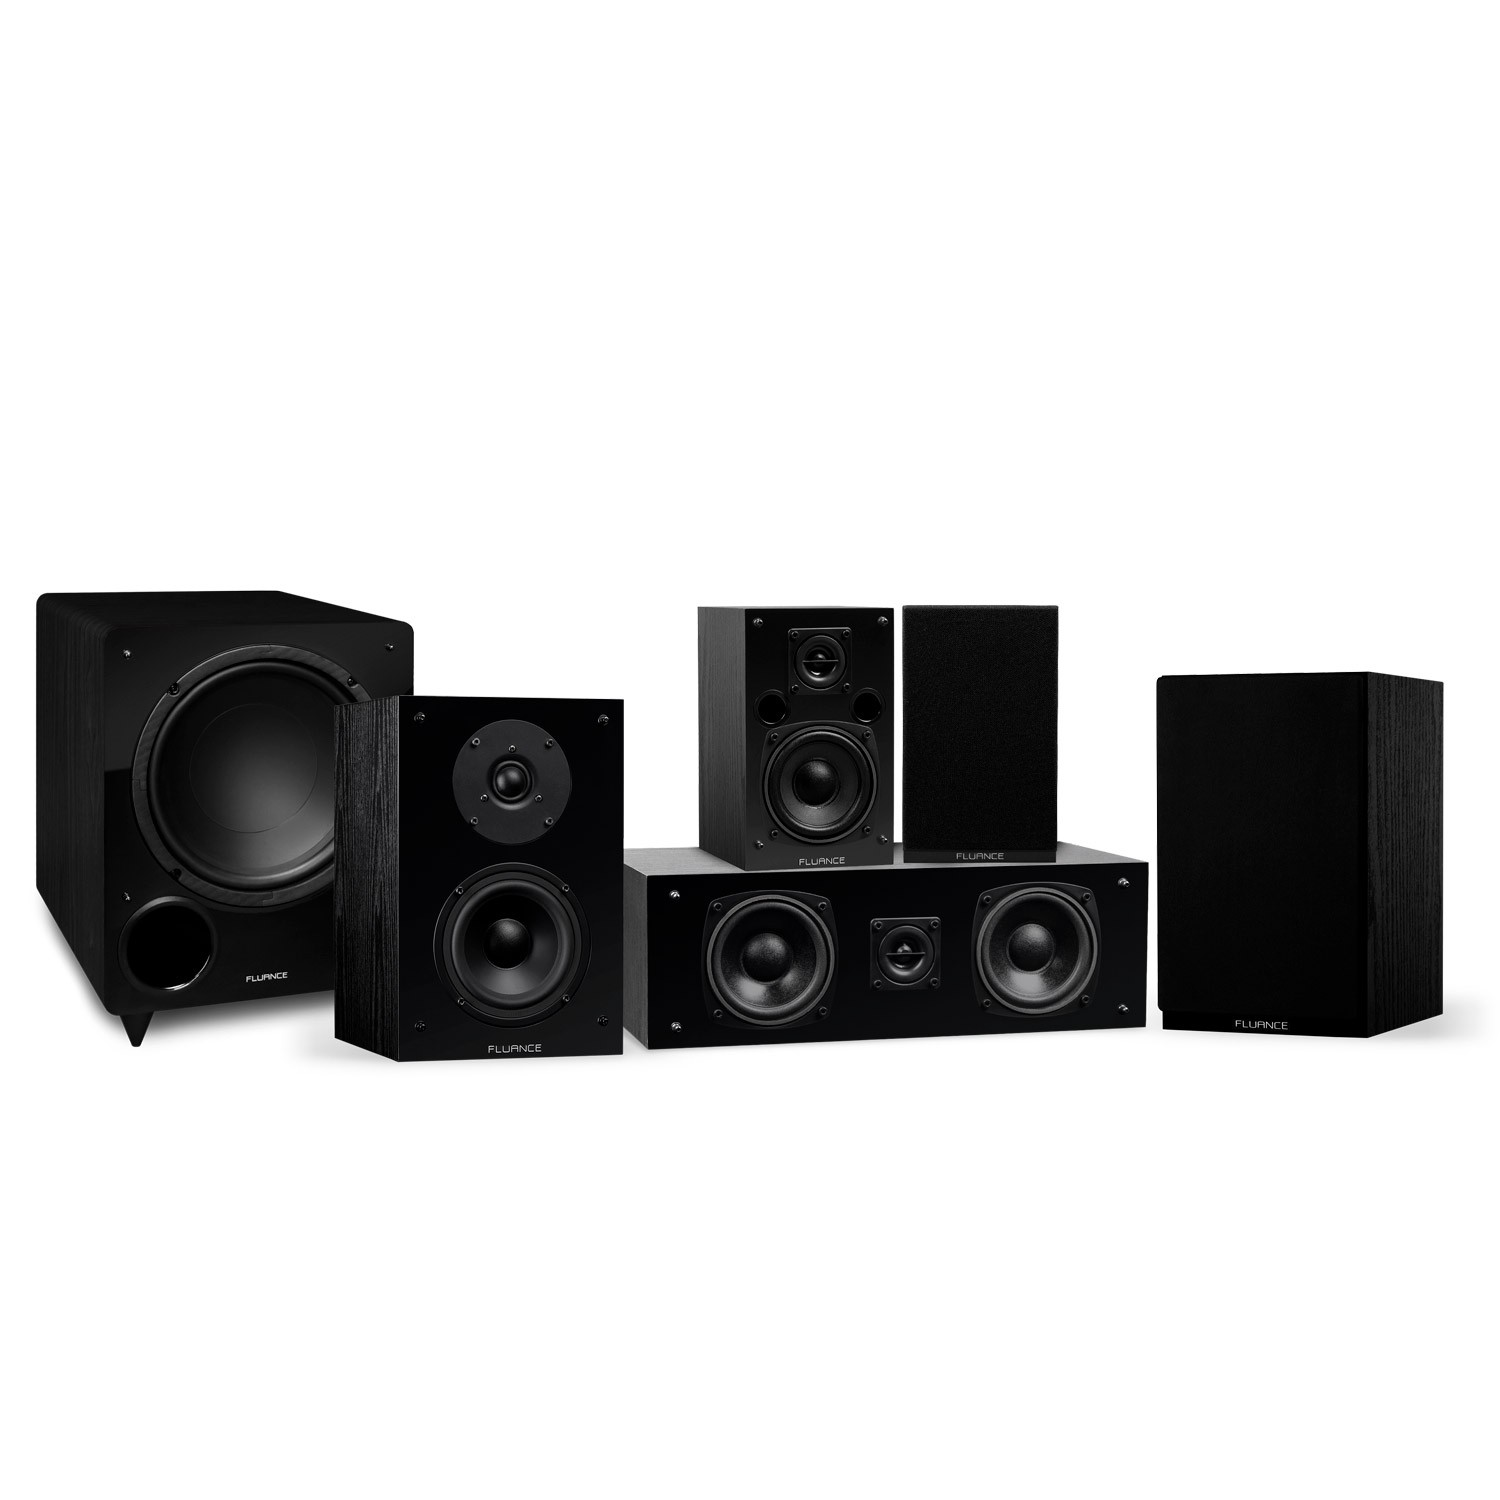 Elite Series Black Ash Compact Surround Sound Home Theater 5.1 Channel Speaker System - Main